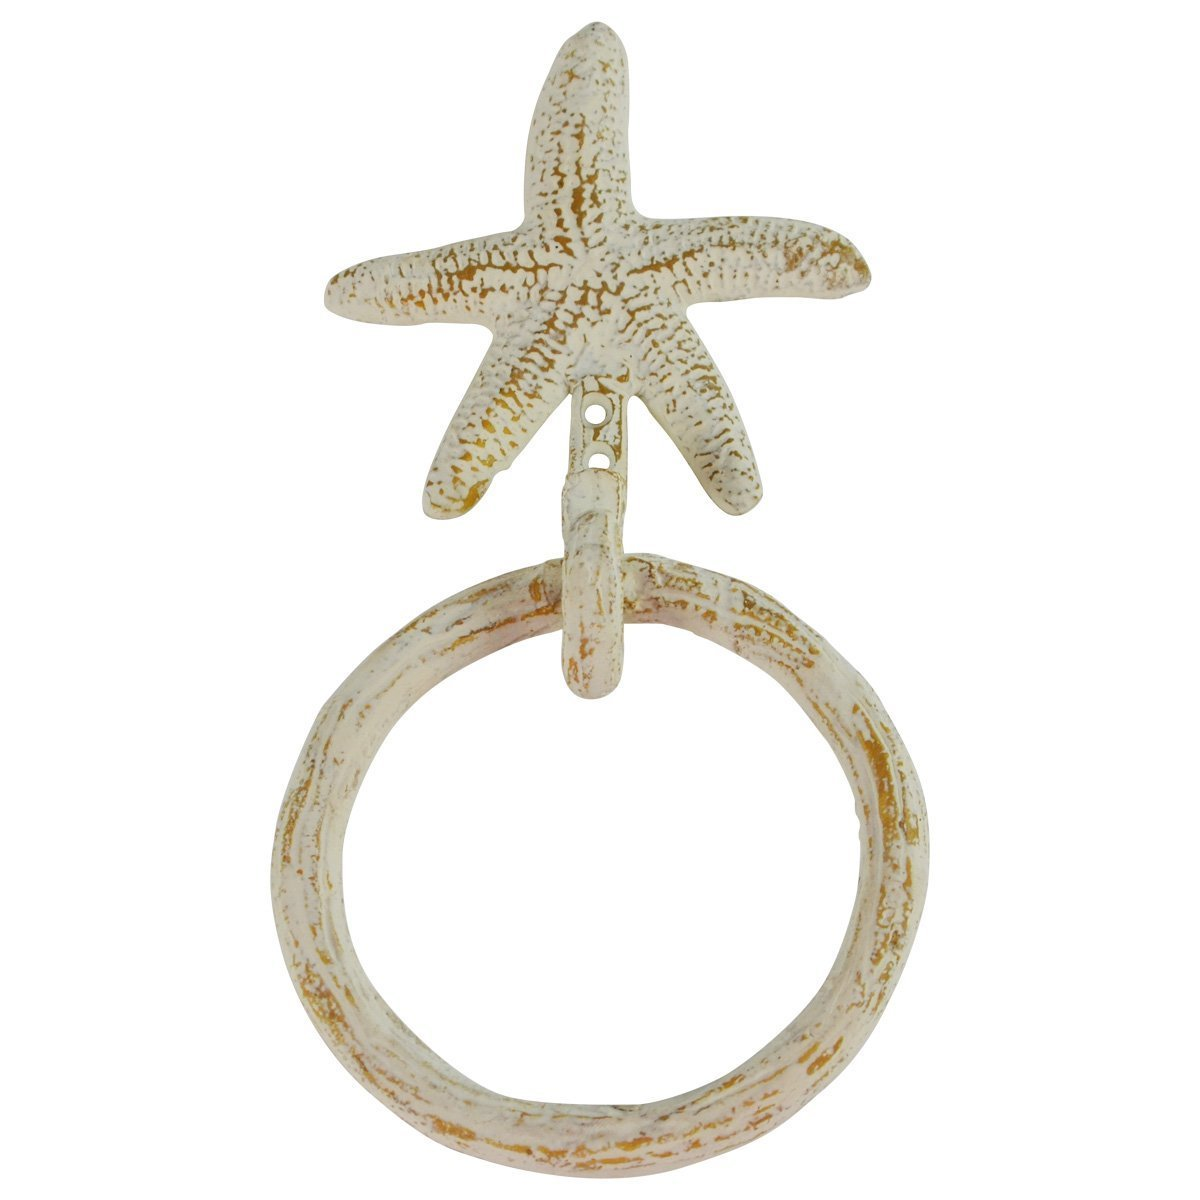 PKD Wall Mount Starfish Kitchen/Bath Towel Ring Holder Hanger Hook Nautical Decor